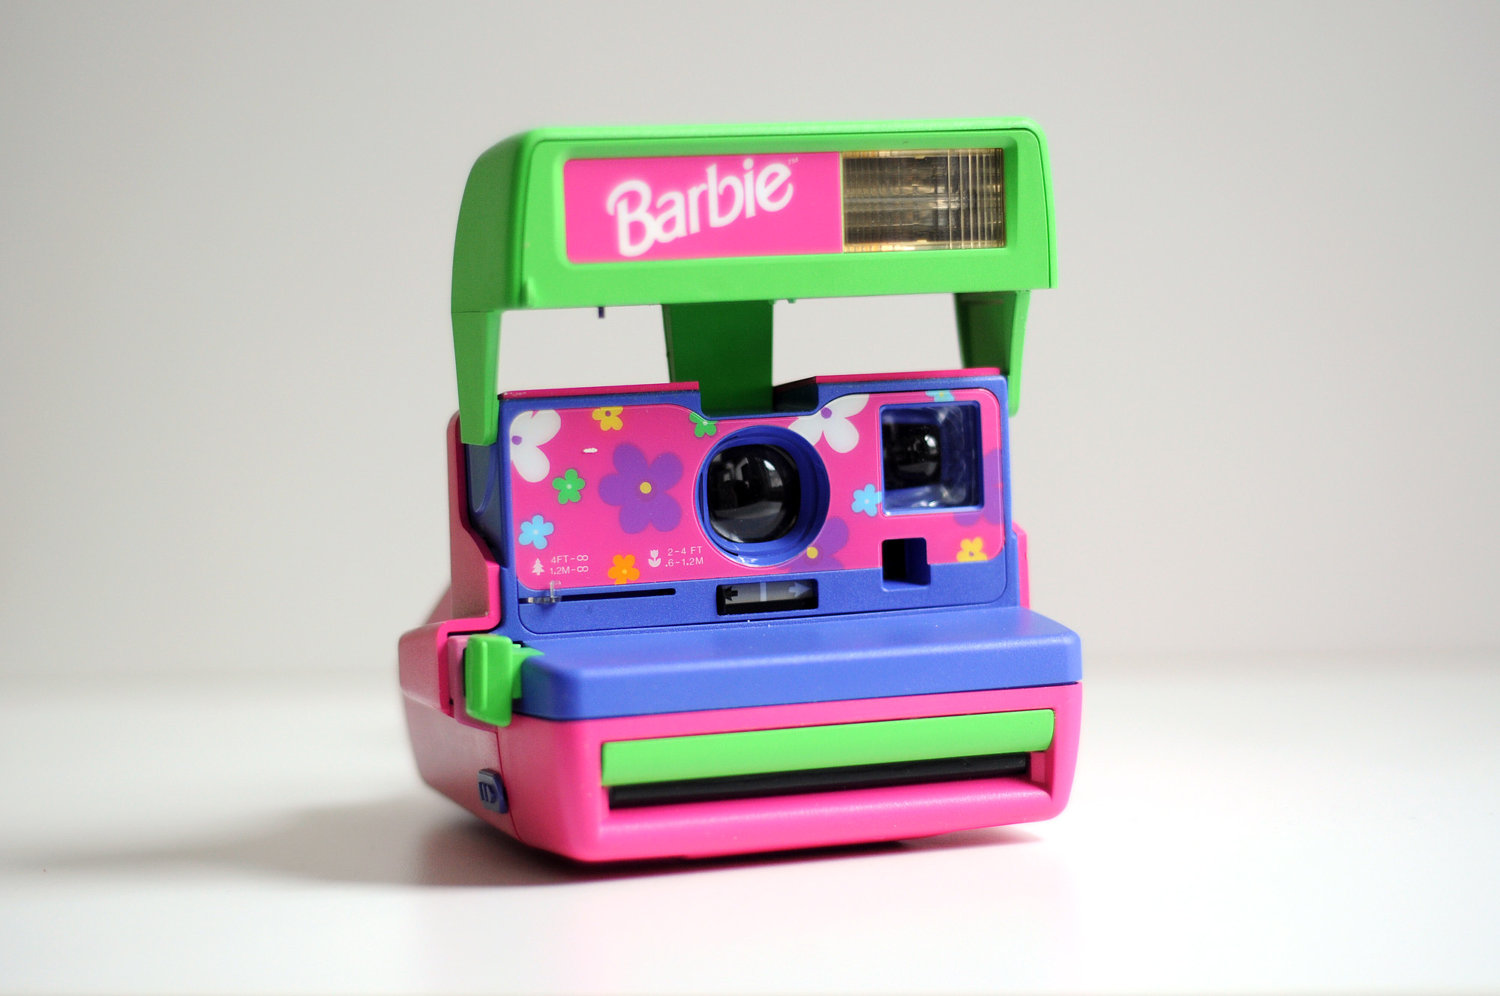 Image Detail for - Barbie Polaroid Camera Rainbow Bright Pink Blue ...